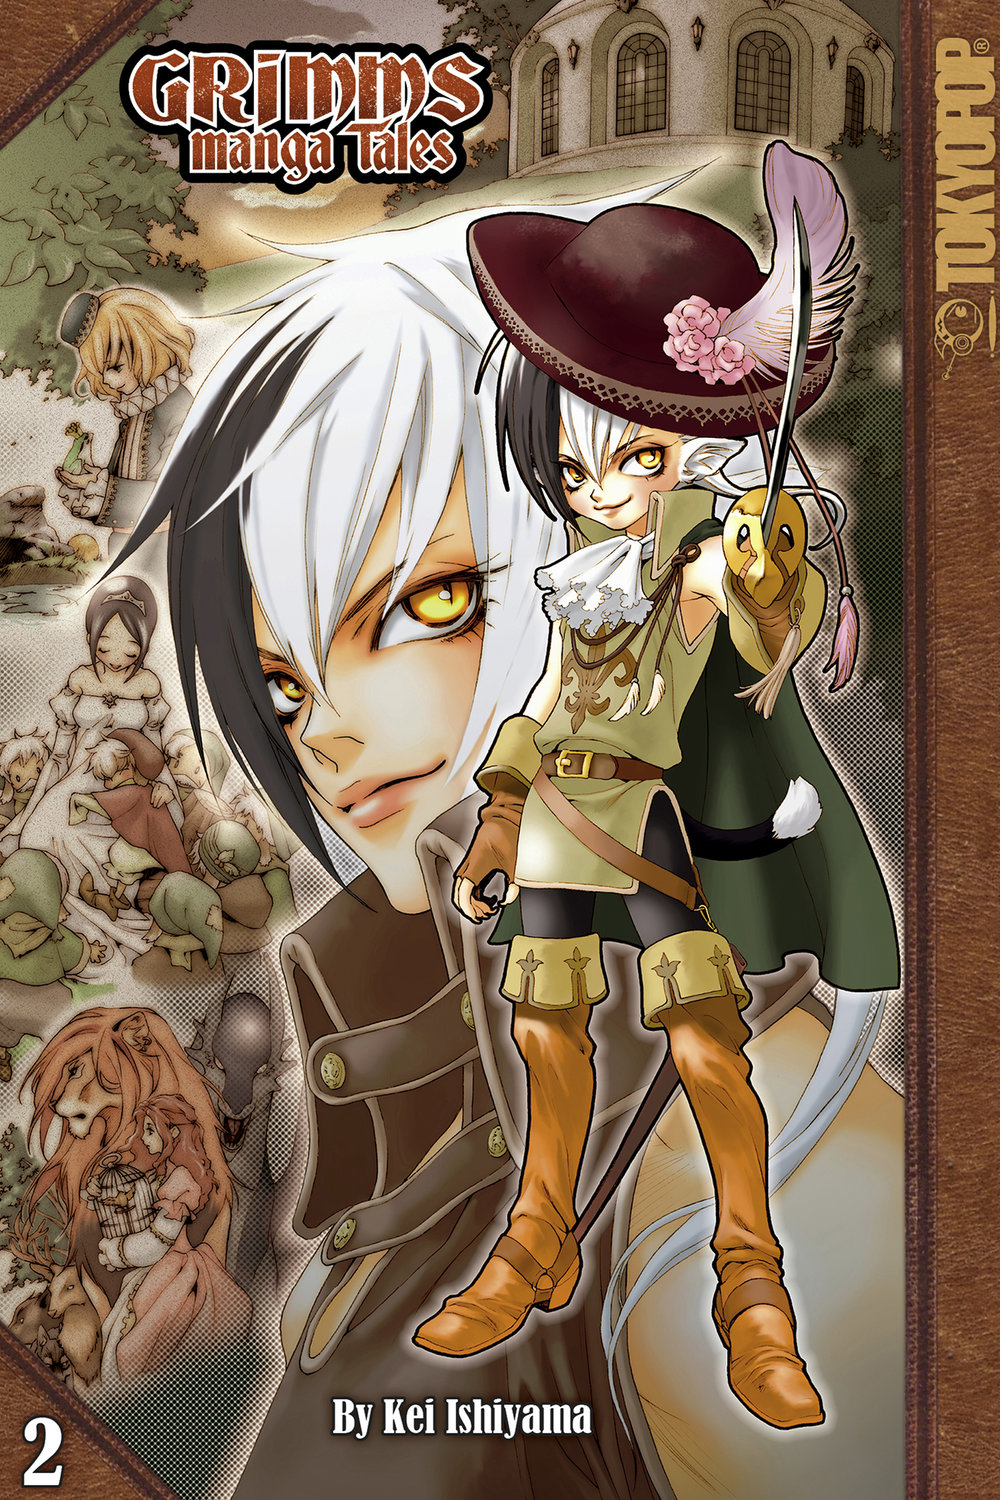 Grimms Manga Tales ebook Vol2 cover (bg).jpg